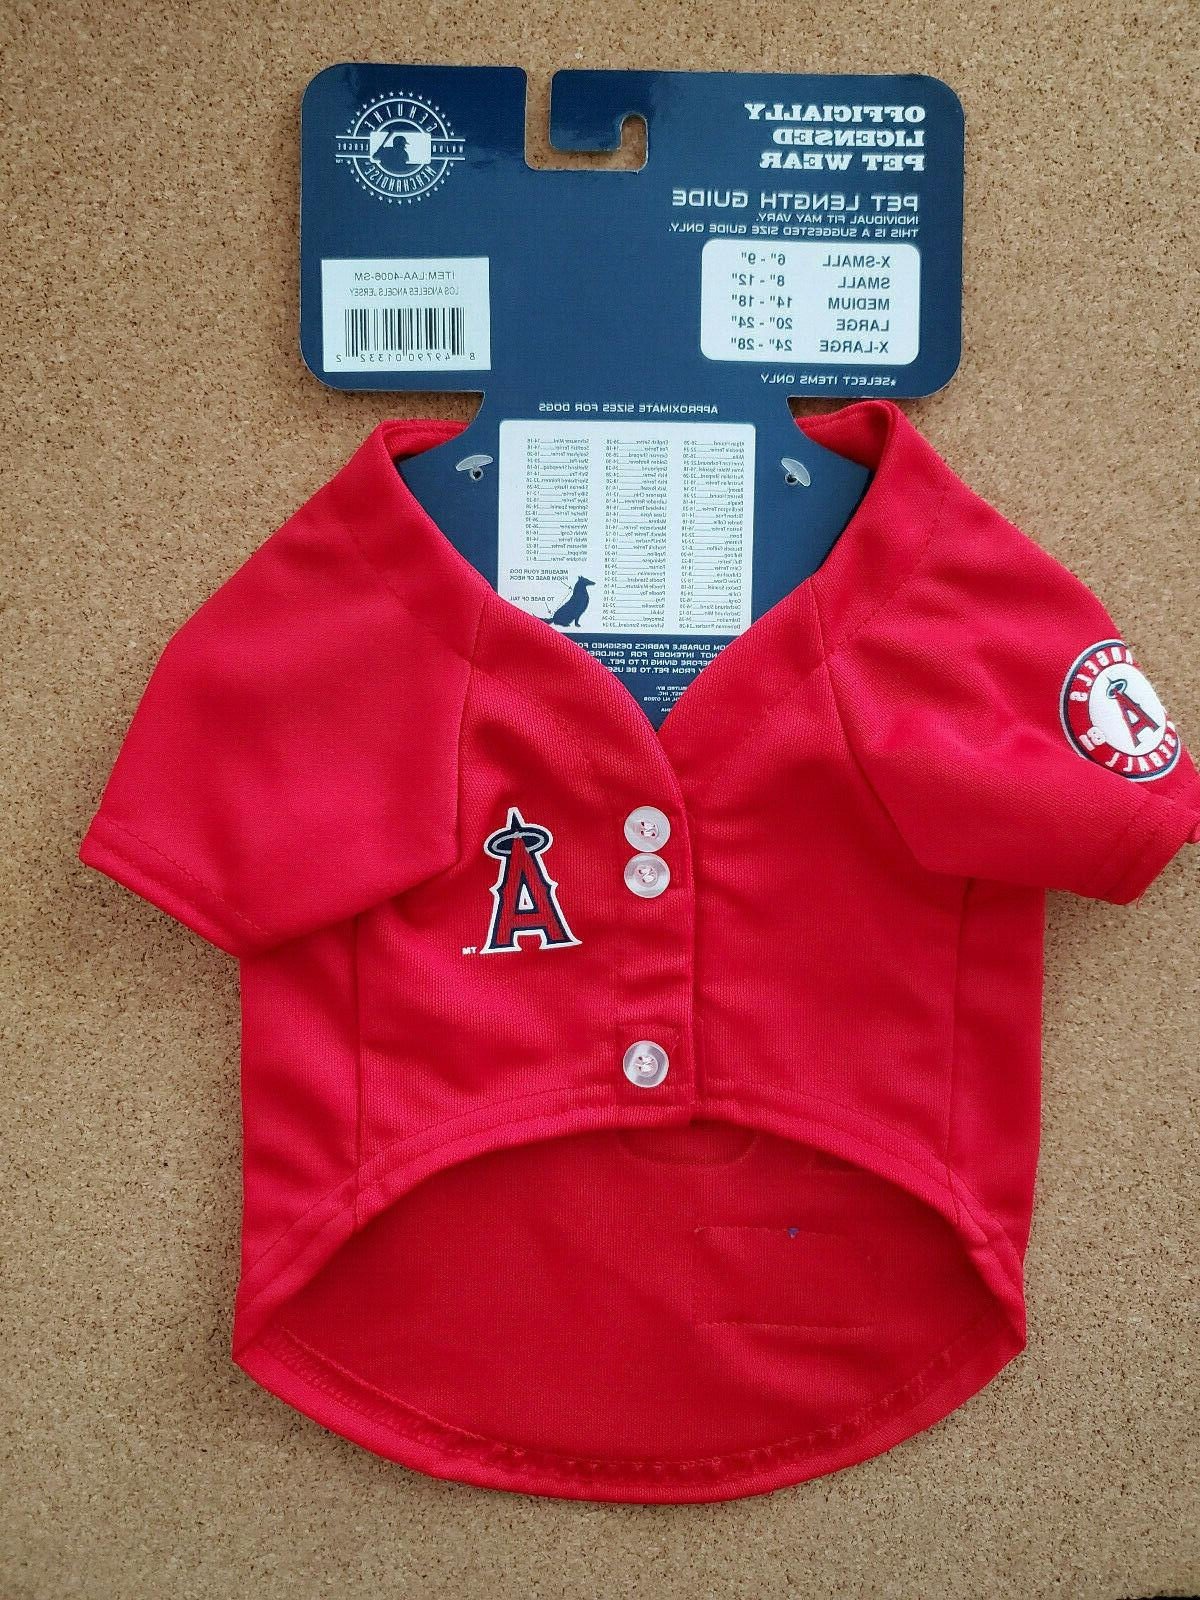 official mlb los angeles angels pet jersey